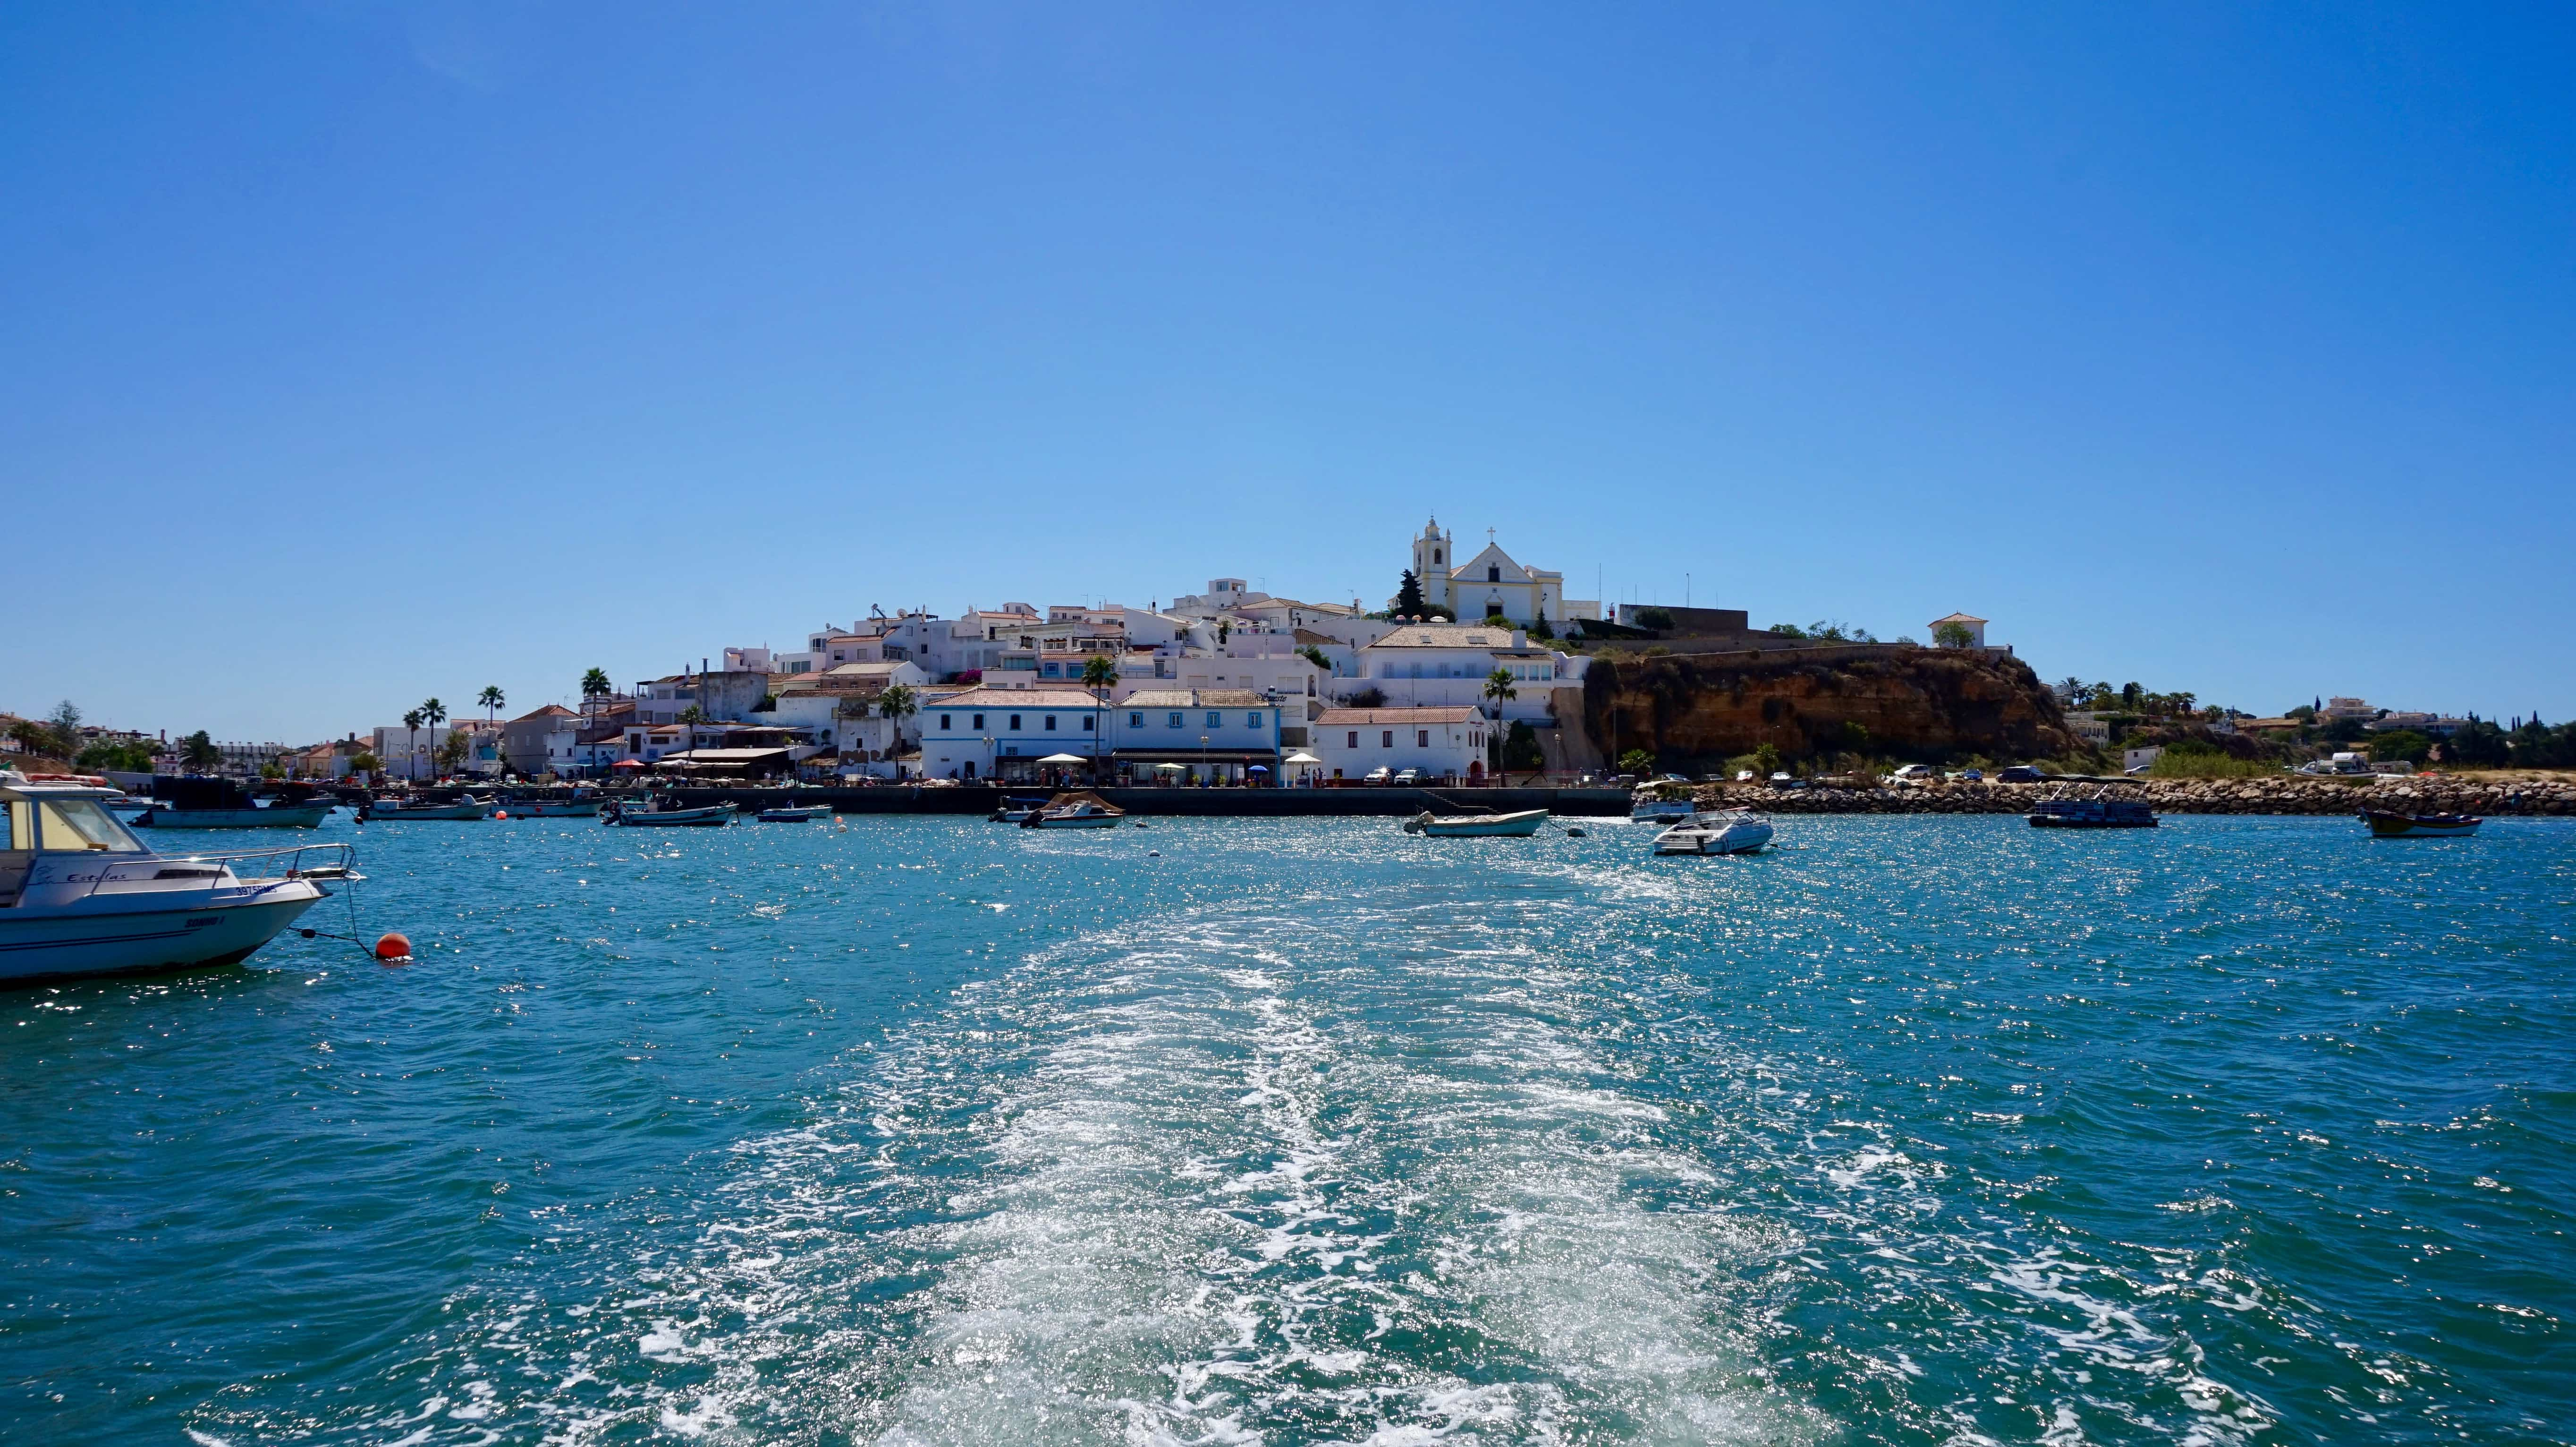 Boat trip along the coast in the Algarve, Portugal